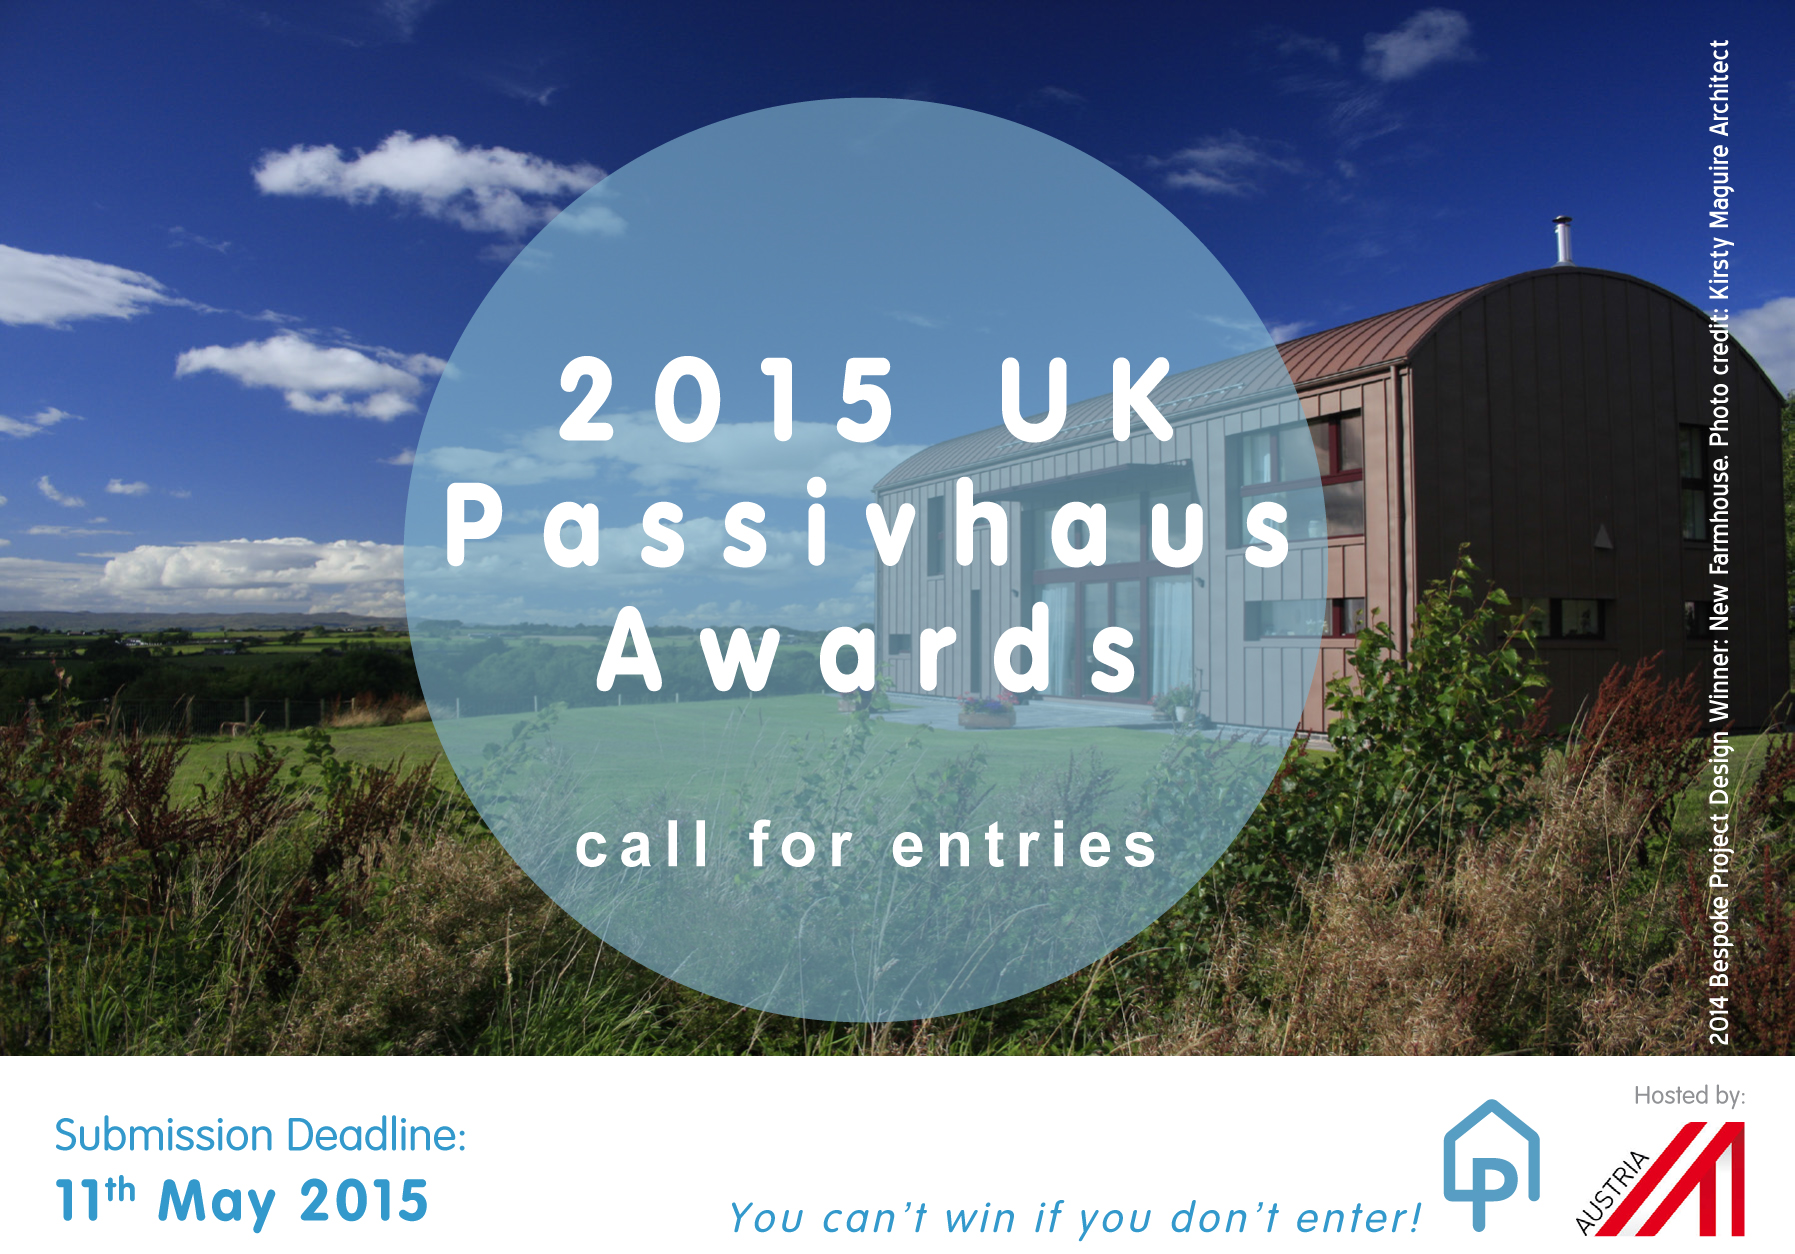 2015 UK Passivhaus Awards Launch